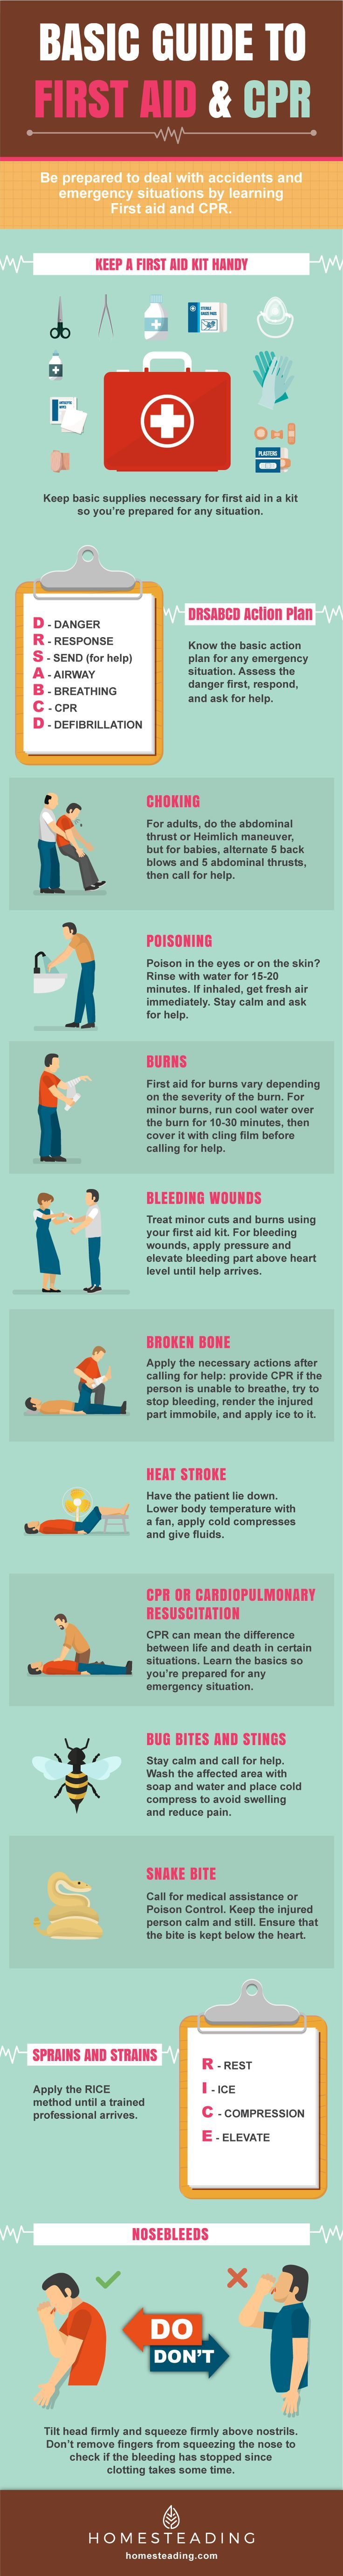 Be prepared to deal with accidents and emergency situations by learning First Aid and CPR.  #medical #health #emergency #medicaltraining  #cbdmedicalcentre #sydney #medicalcentre #sydneydoctors #firstaid